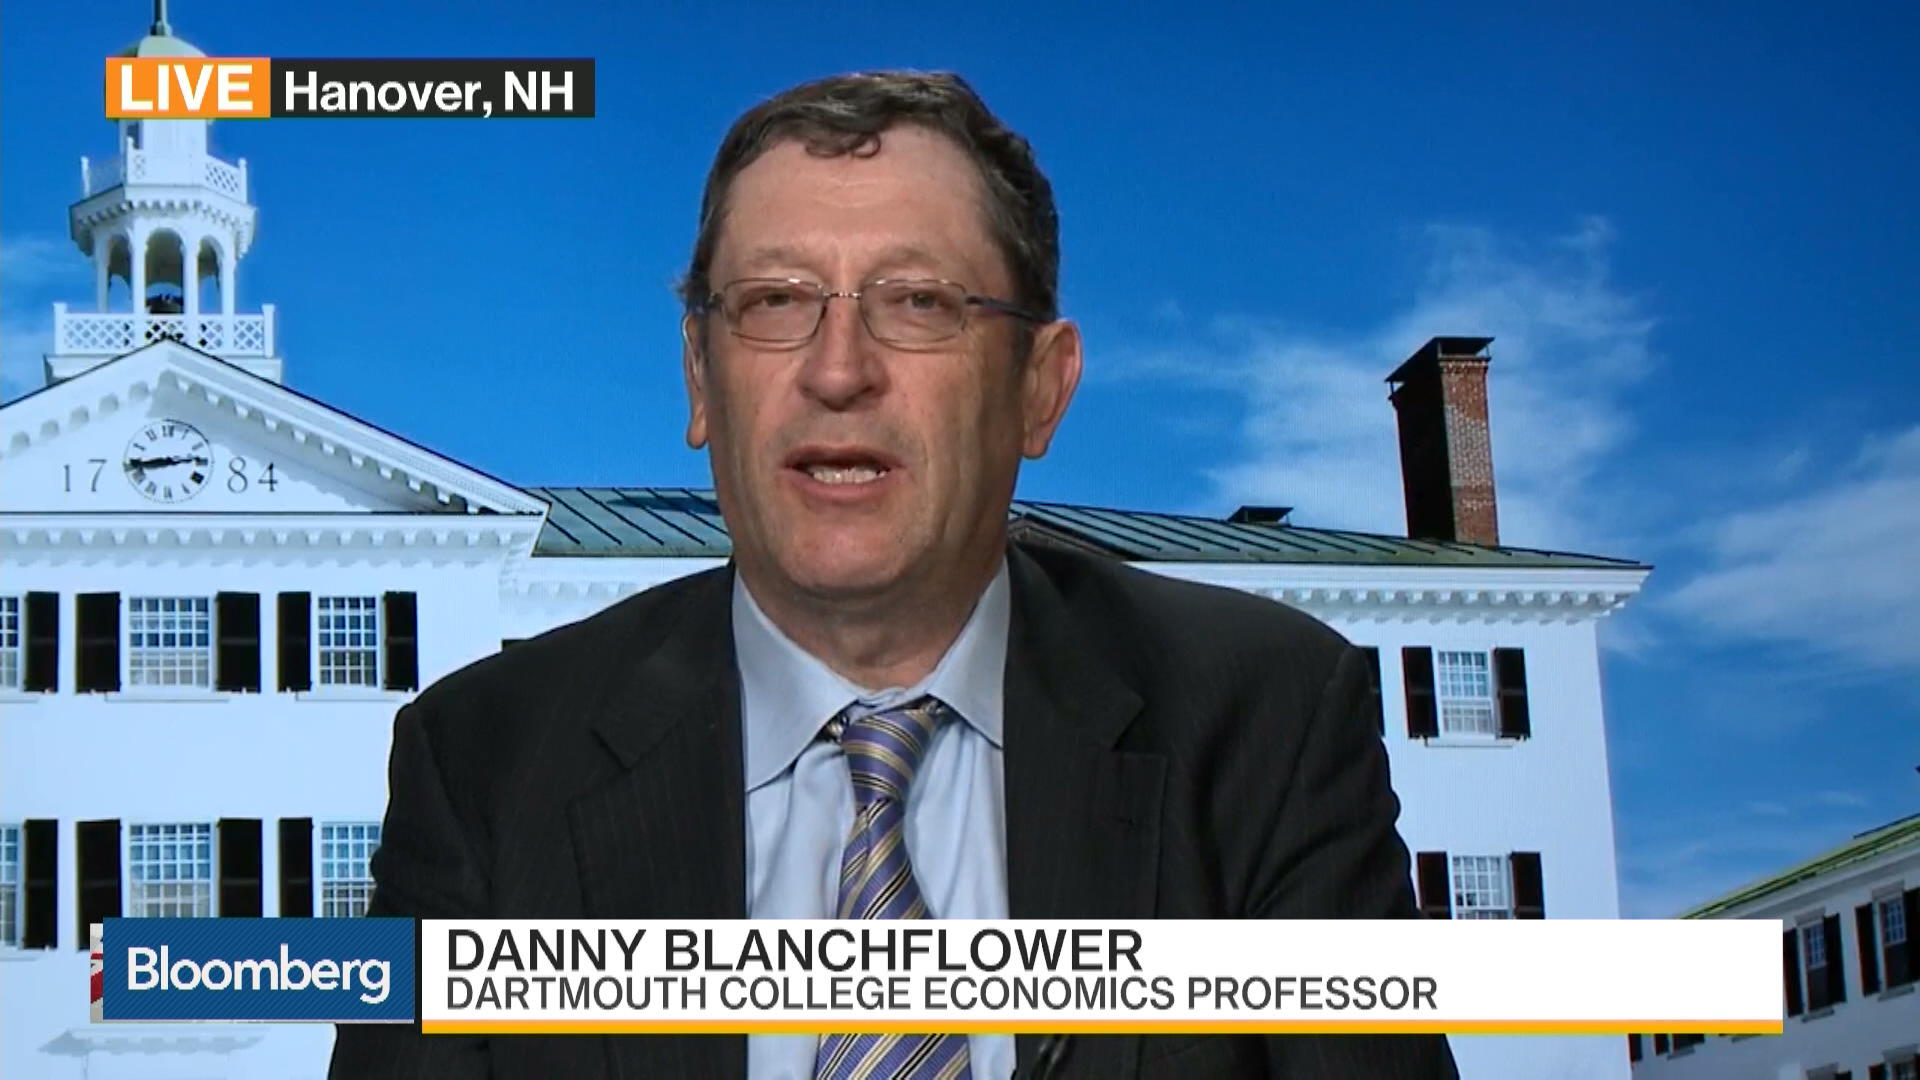 Dartmouth s Blanchflower Sees Brexit Support Tumbling – Bloomberg